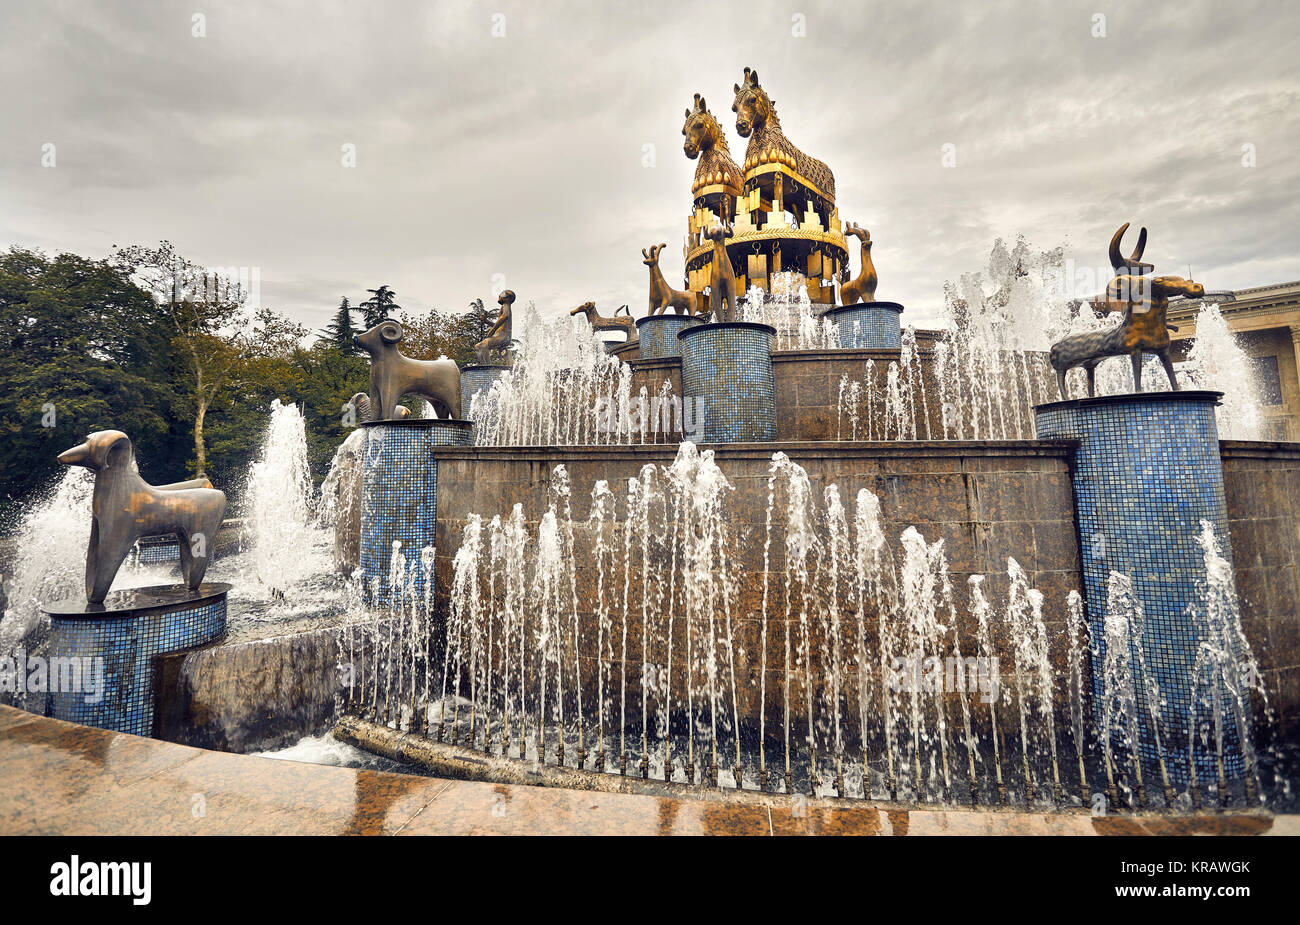 Kolkhida Fountain with golden horse statues on the central square of Kutaisi, Georgia, Europe. - Stock Image